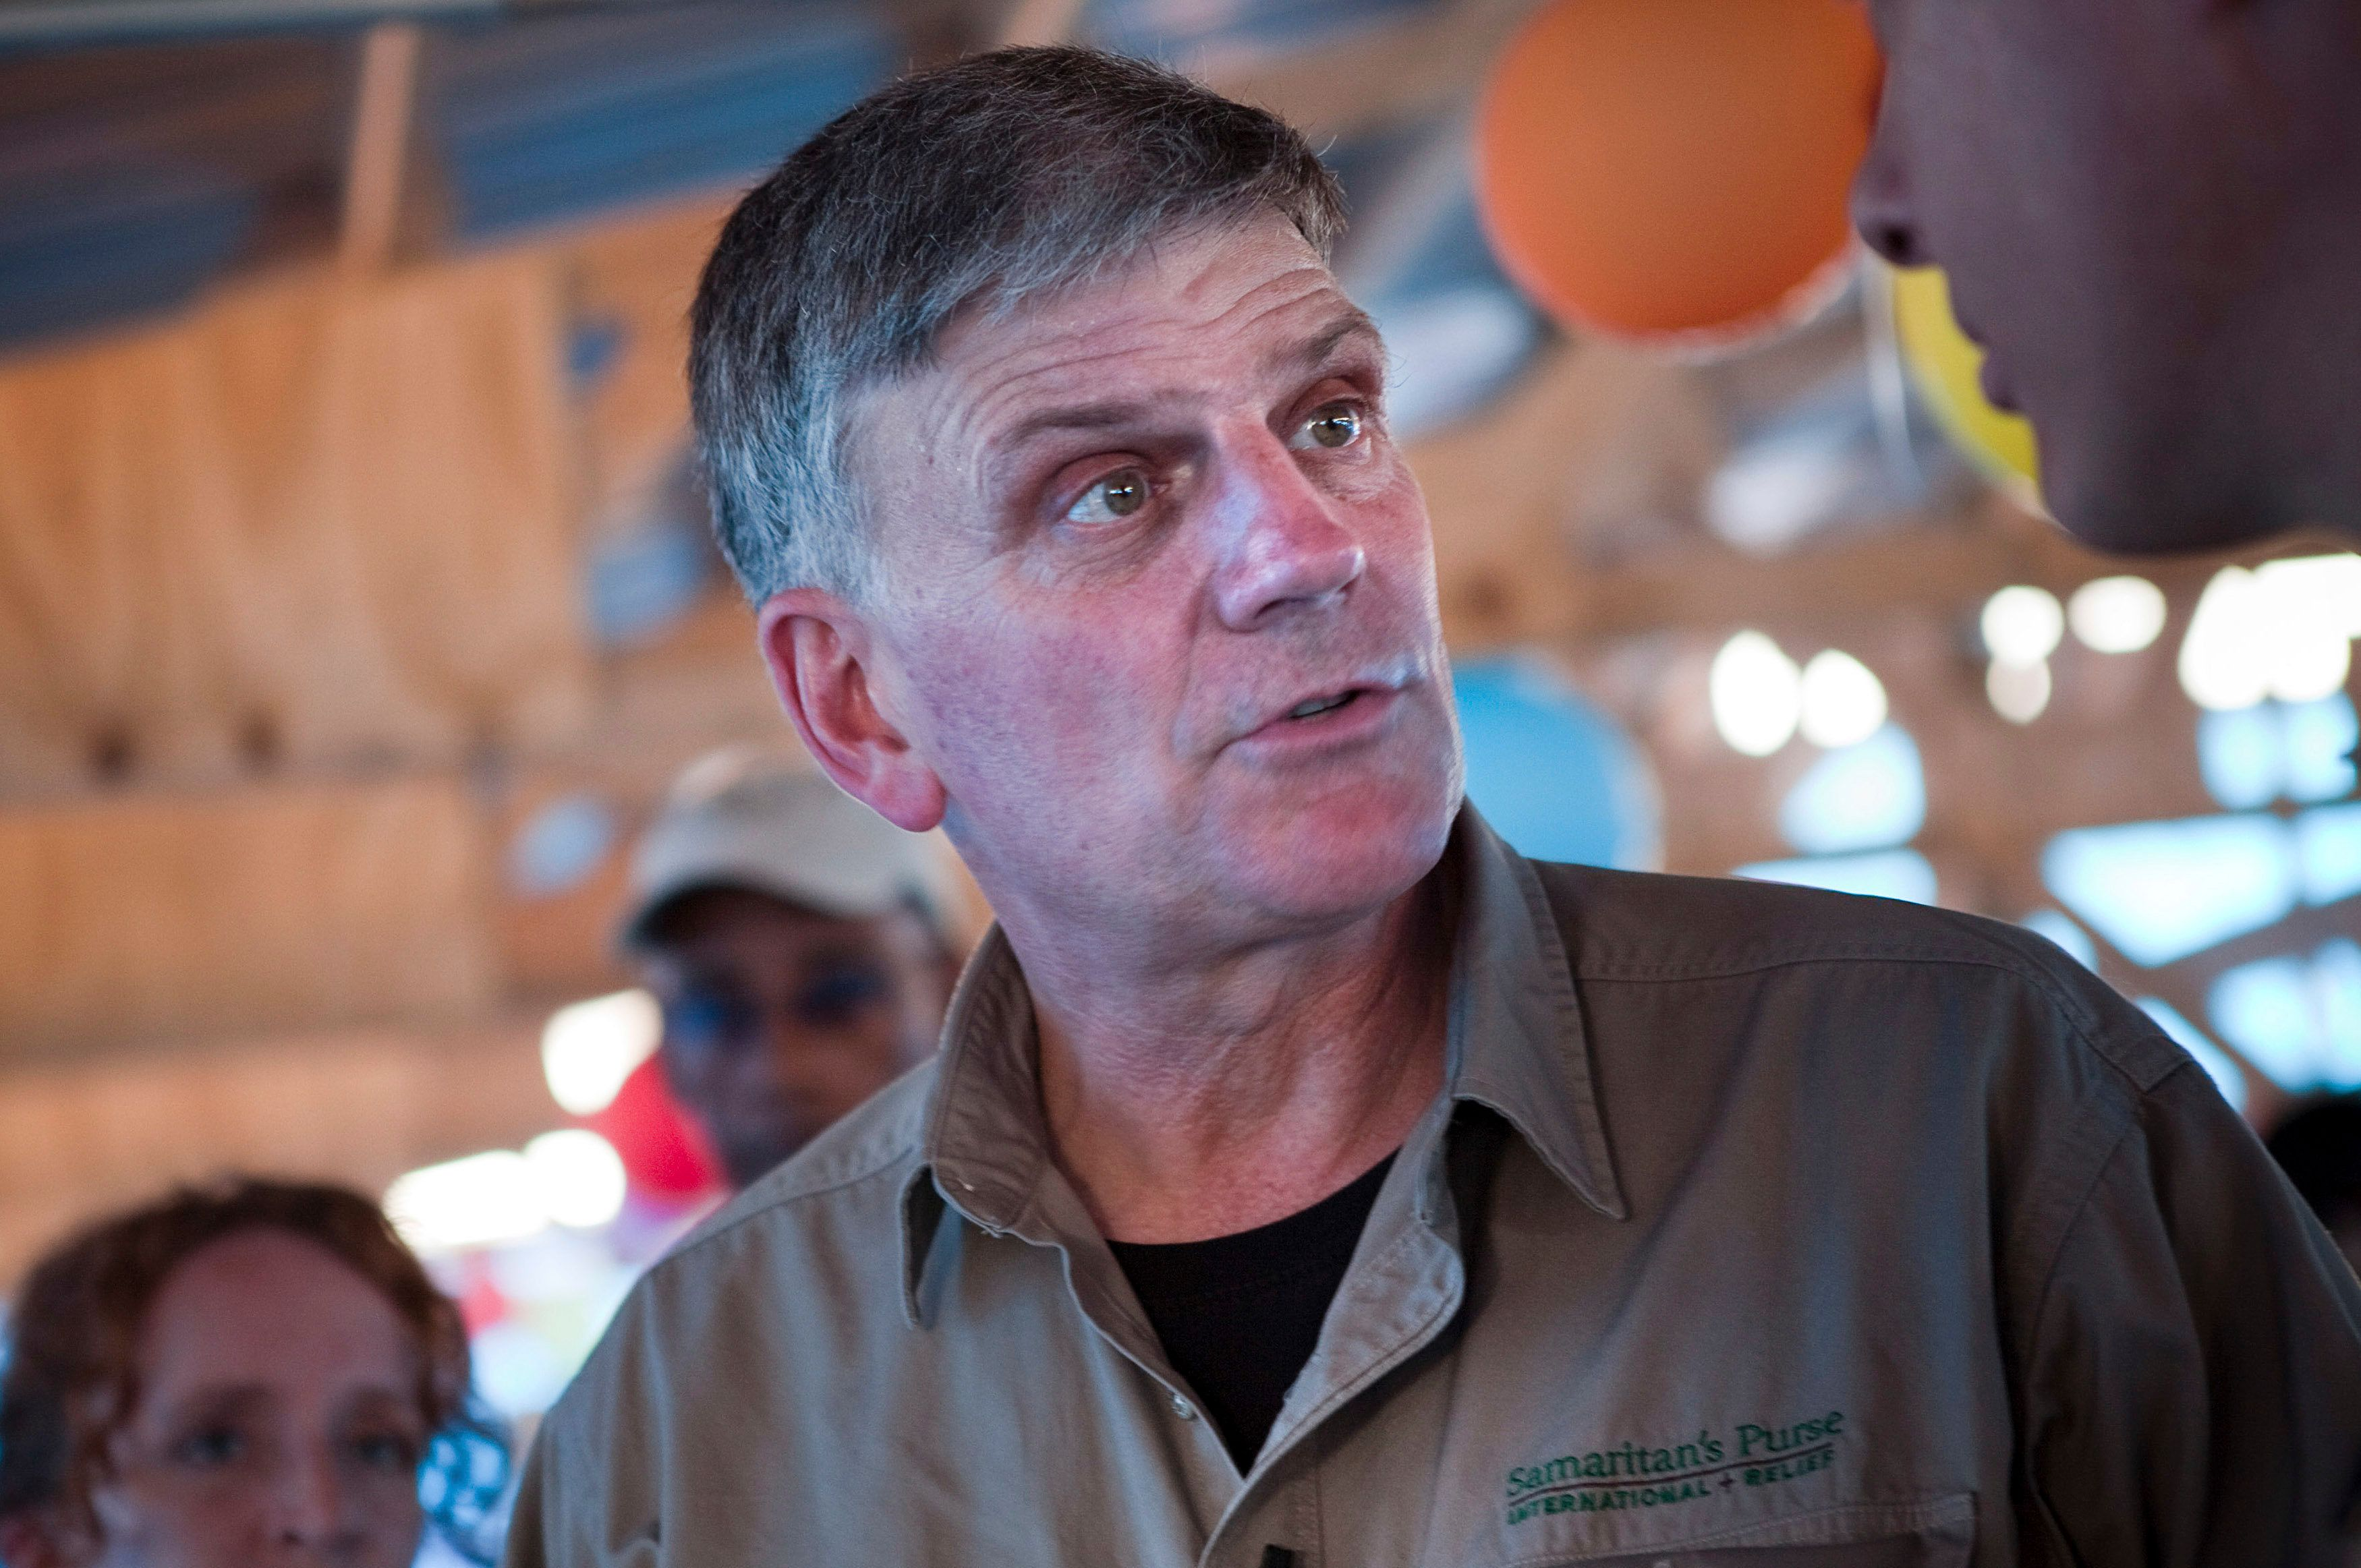 Franklin Graham, head of international relief organization Samaritan's Purse.